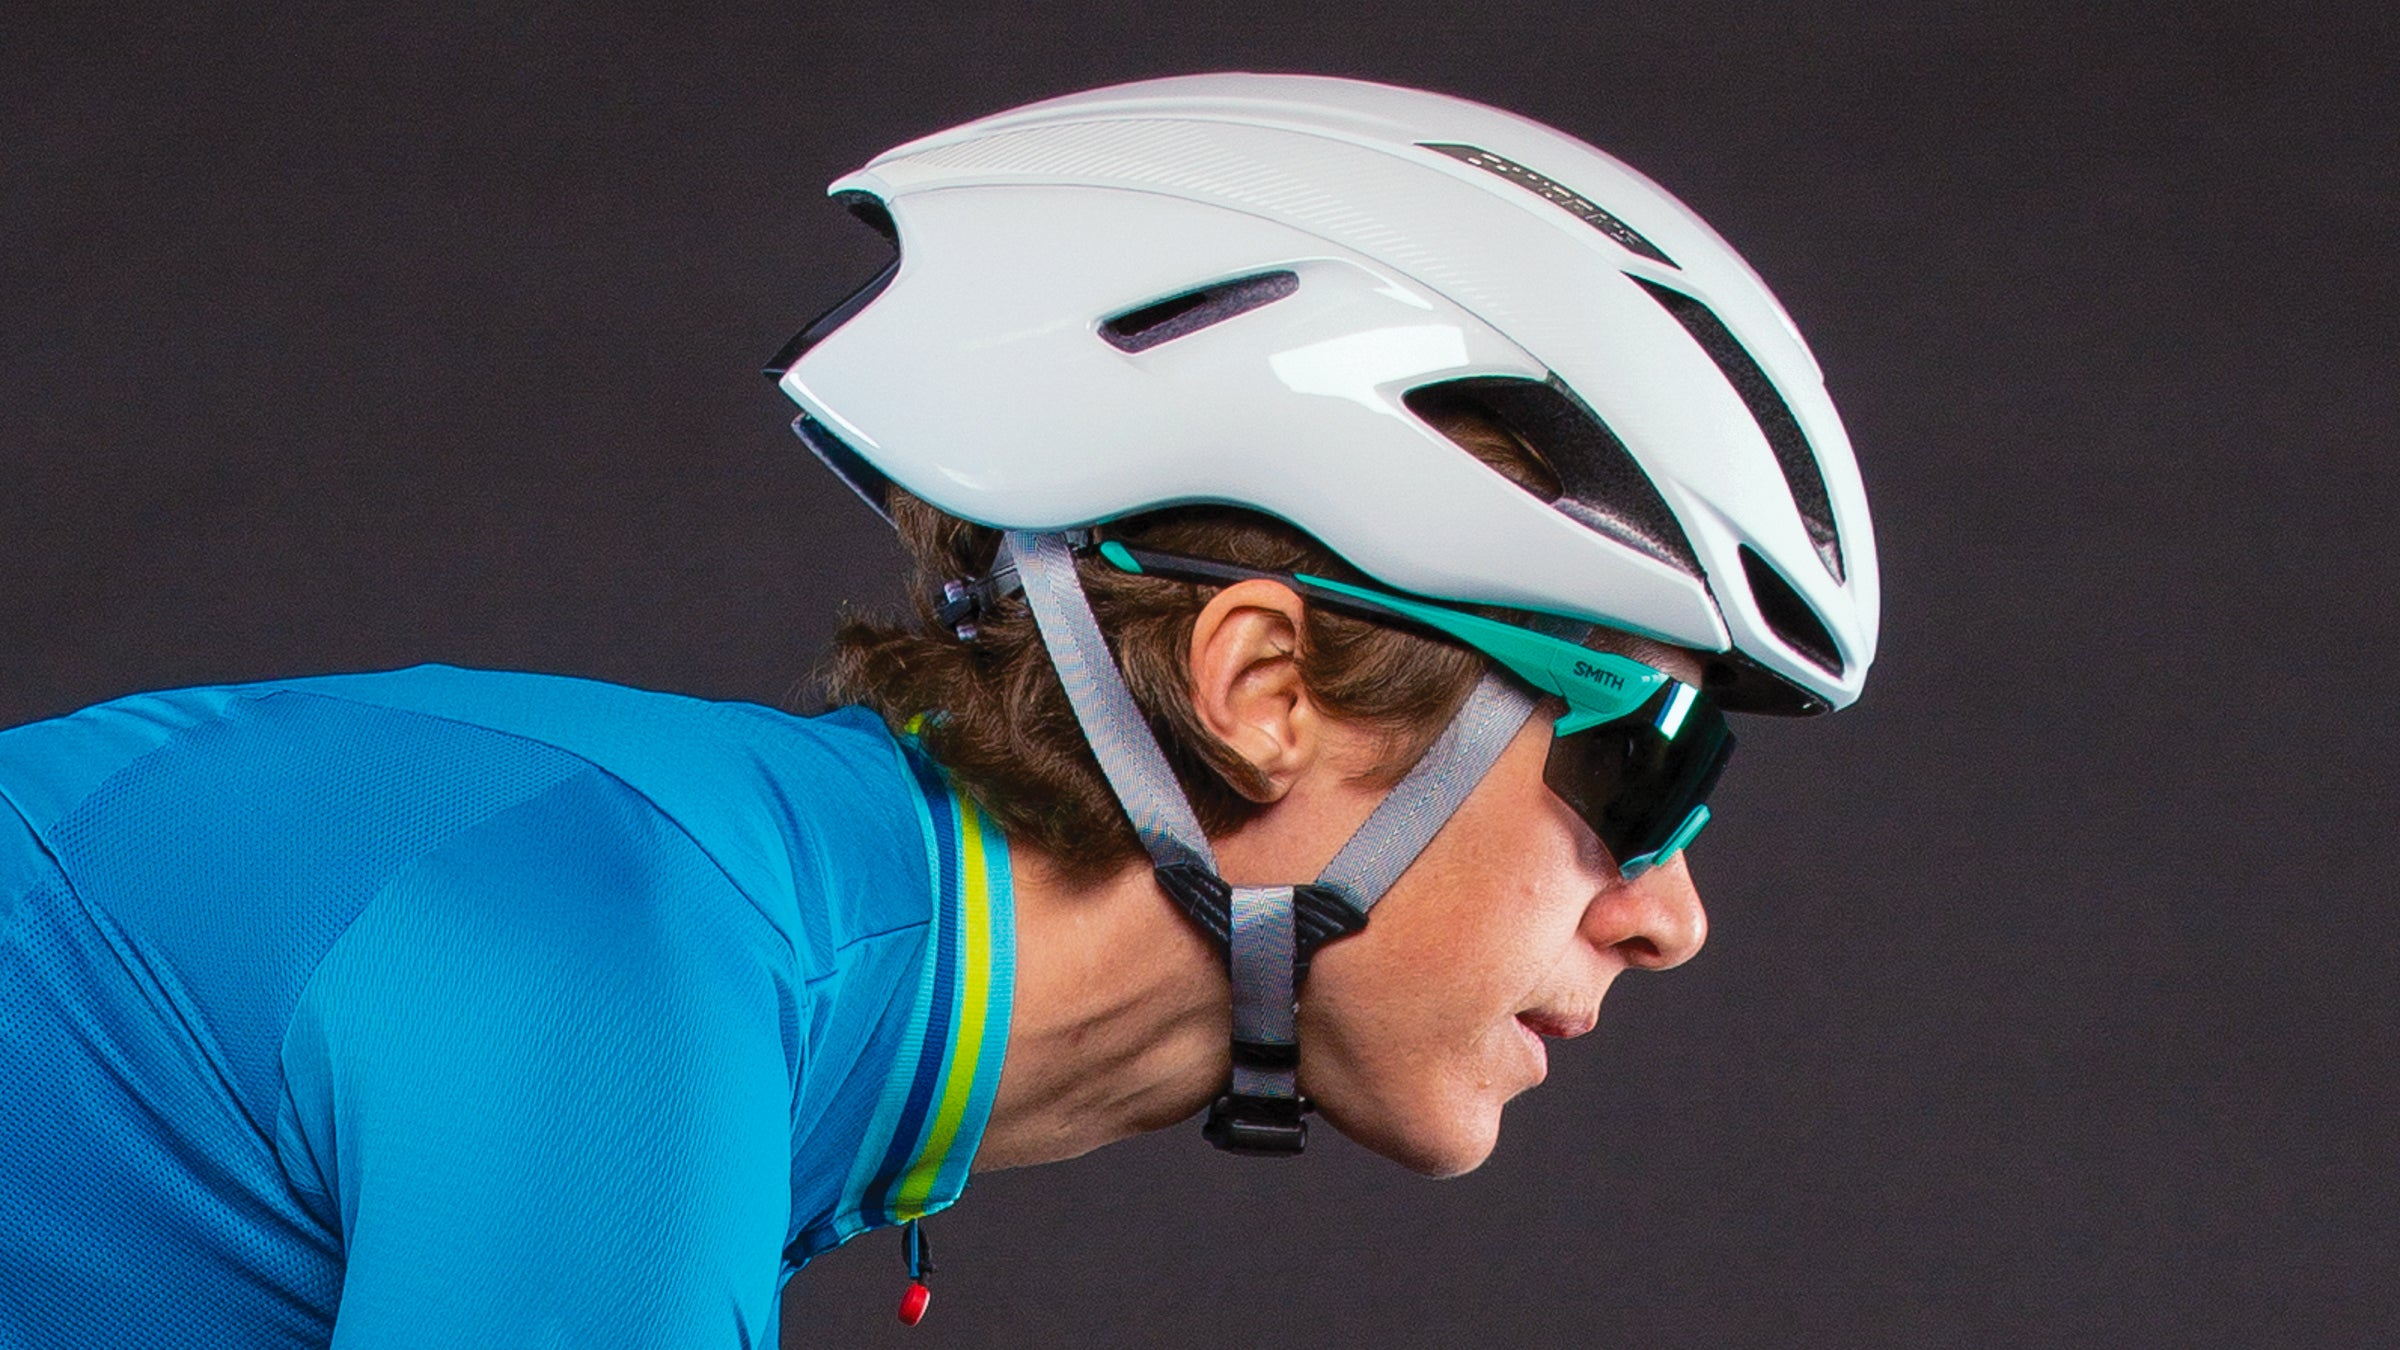 Close-up of a woman's profile wearing cycling helmet and sunglasses